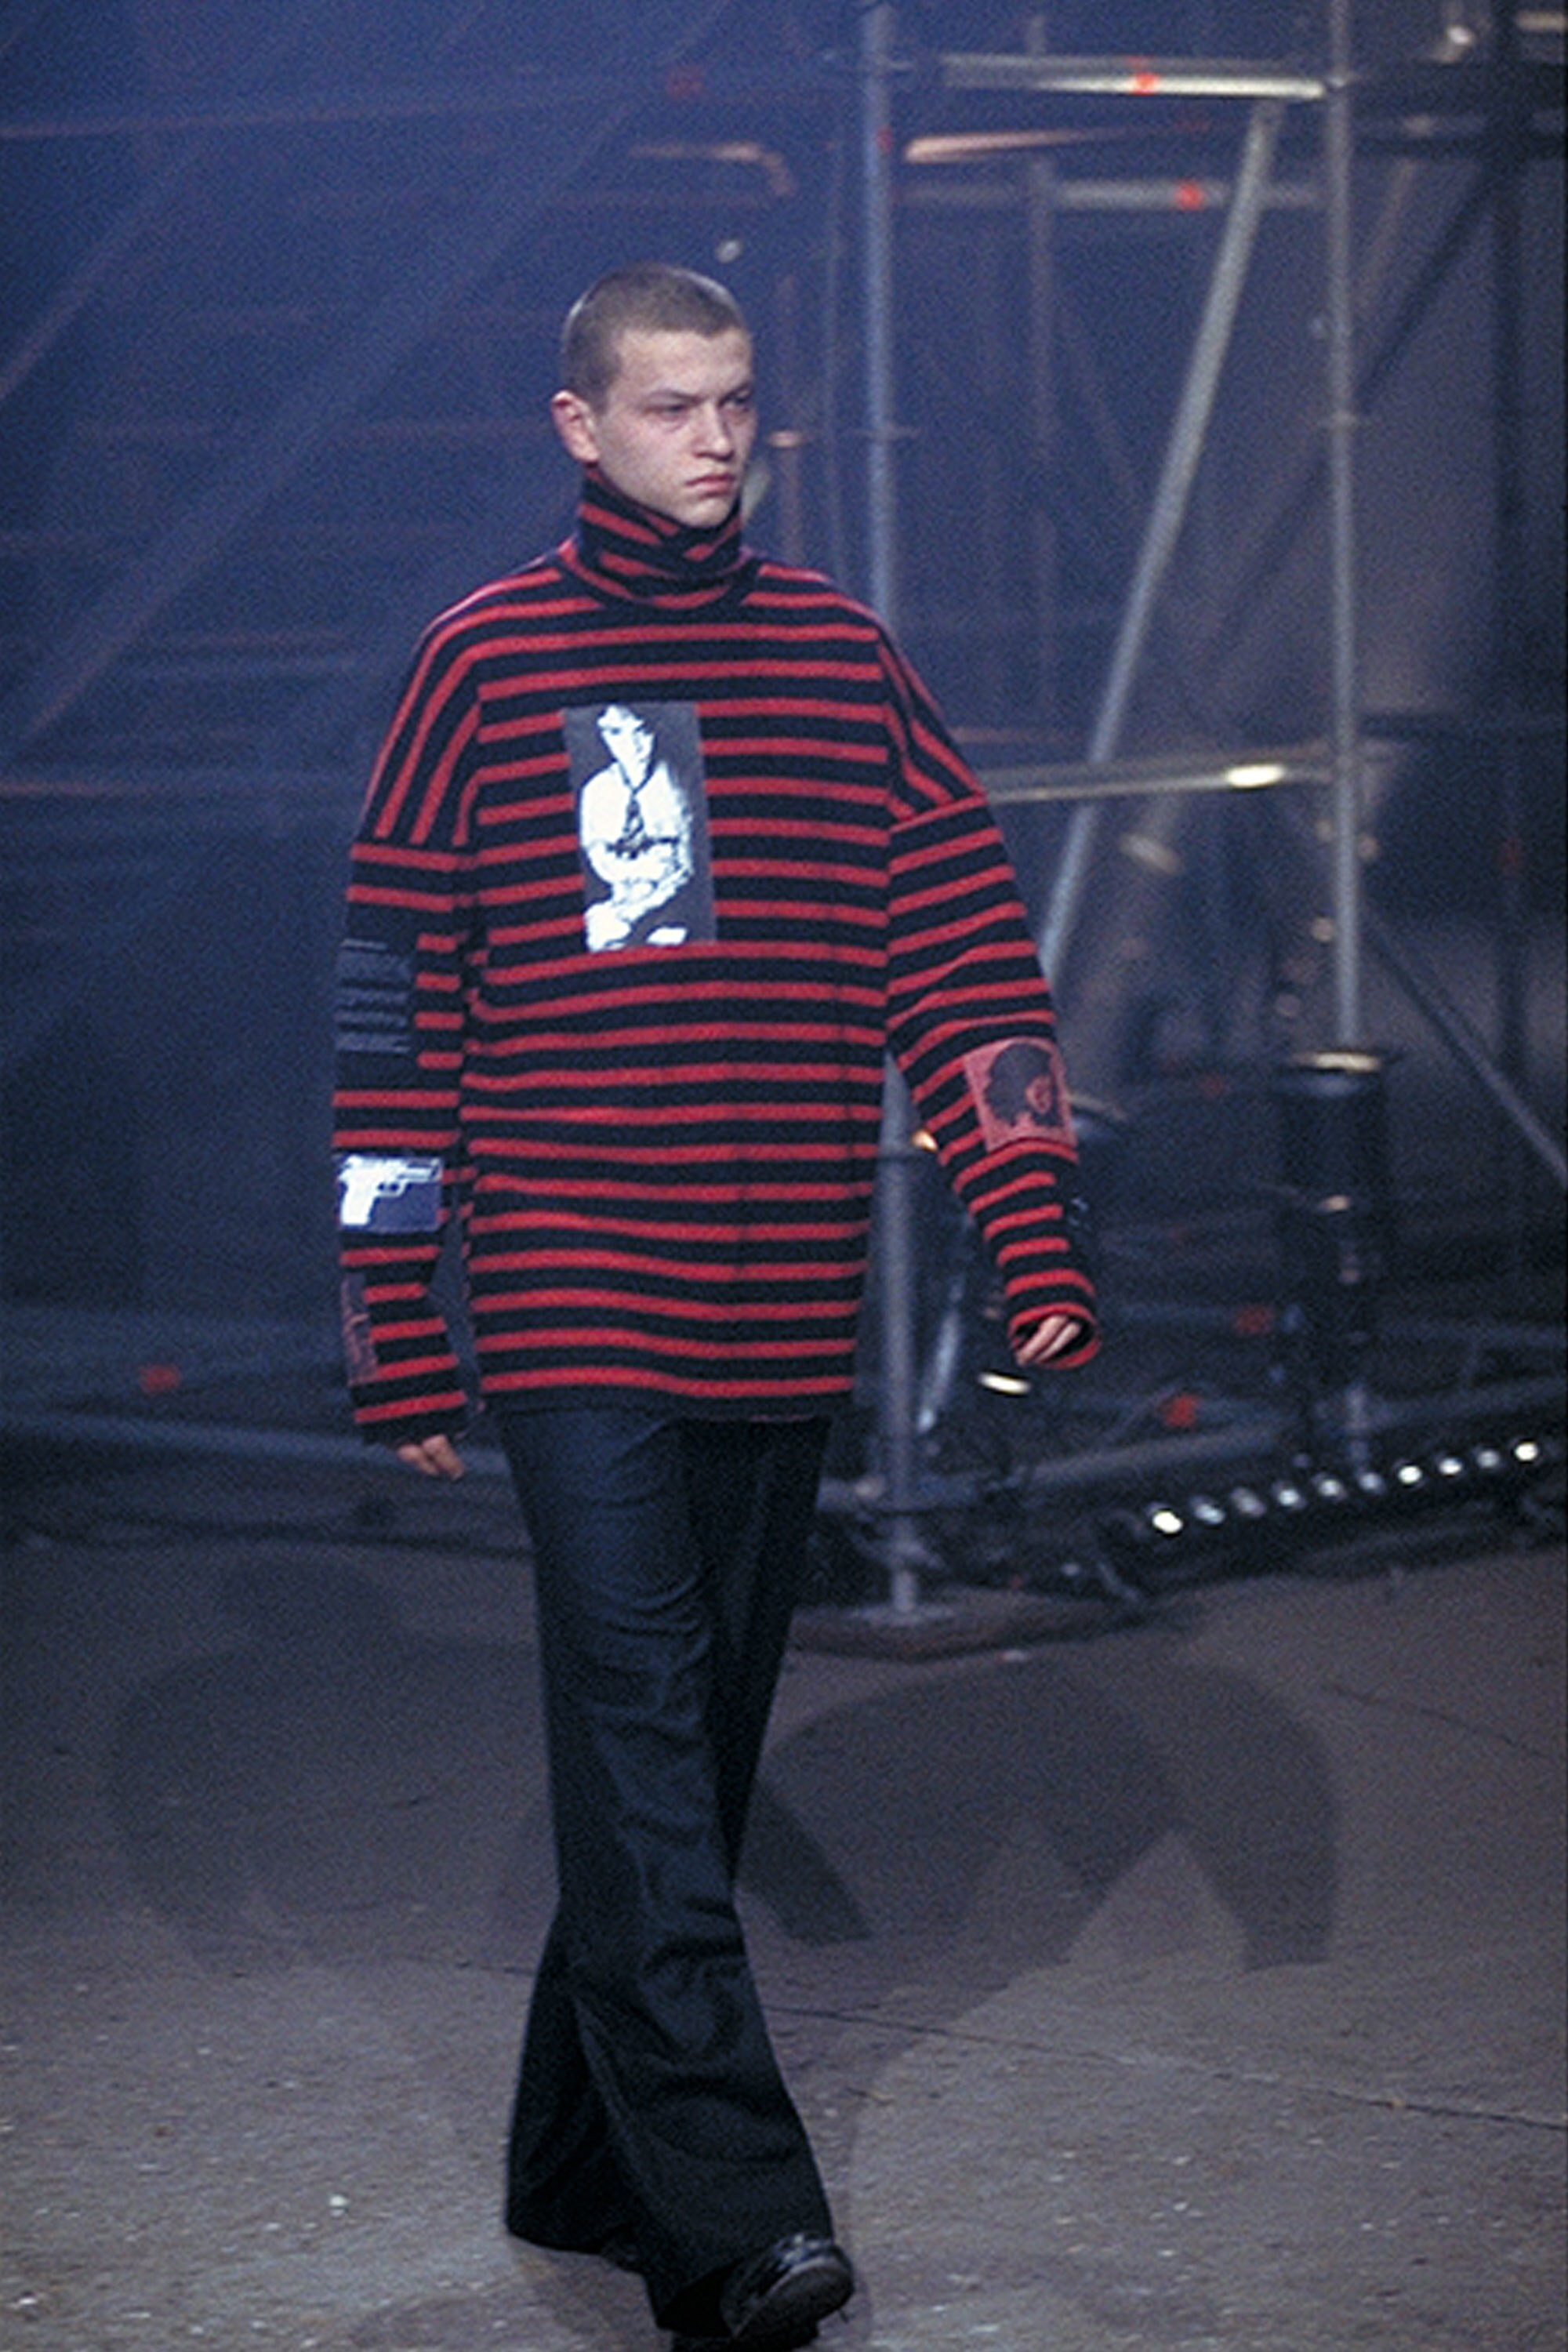 Image of Thomas Haustein as Detlev R. In Christiane F. - we children from Bahnhof Zoo in a Raf Simons AW01 sweater taken from the Vogue Runway app